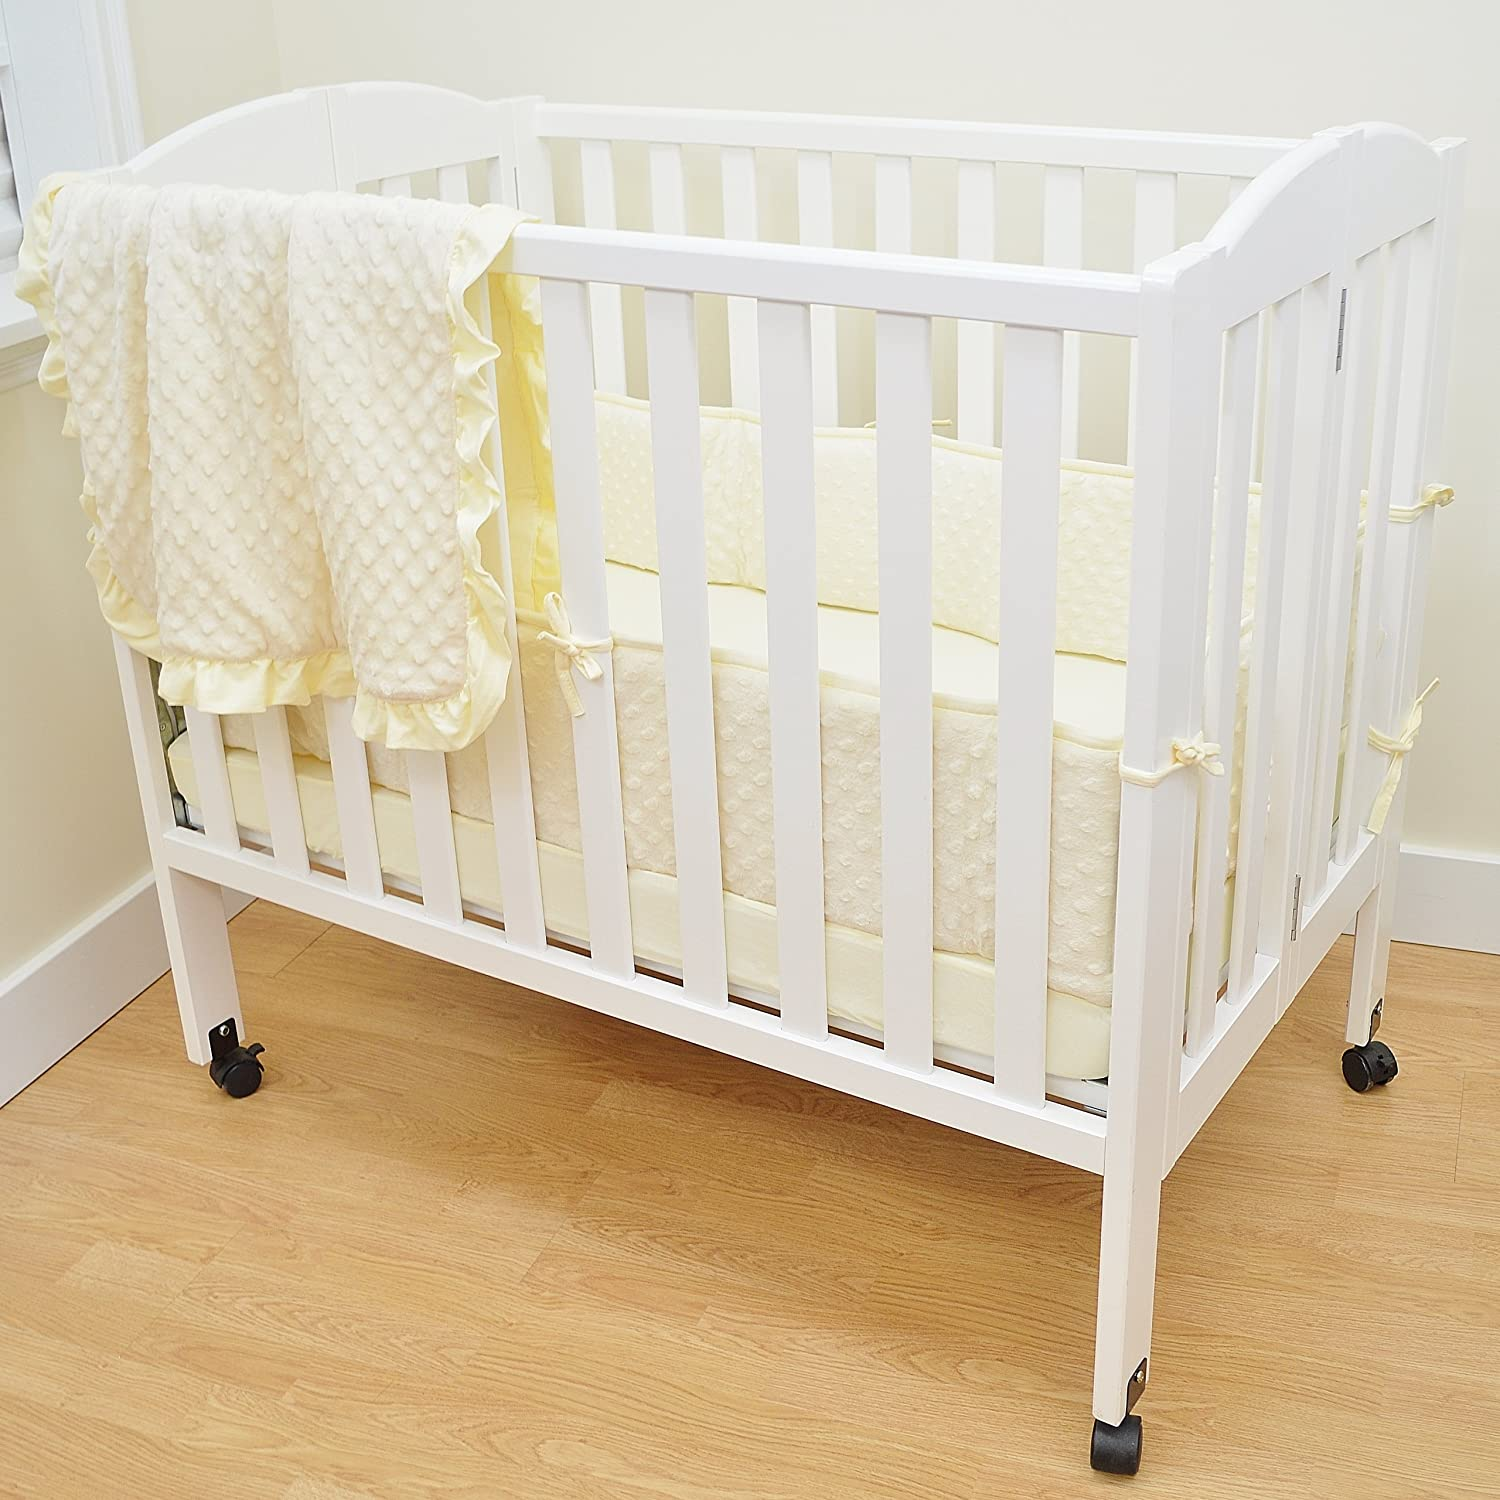 hello cribs bestof frzqnc a your best crib small mini have minicribs nursery stylish space of fit these will pin baby cute